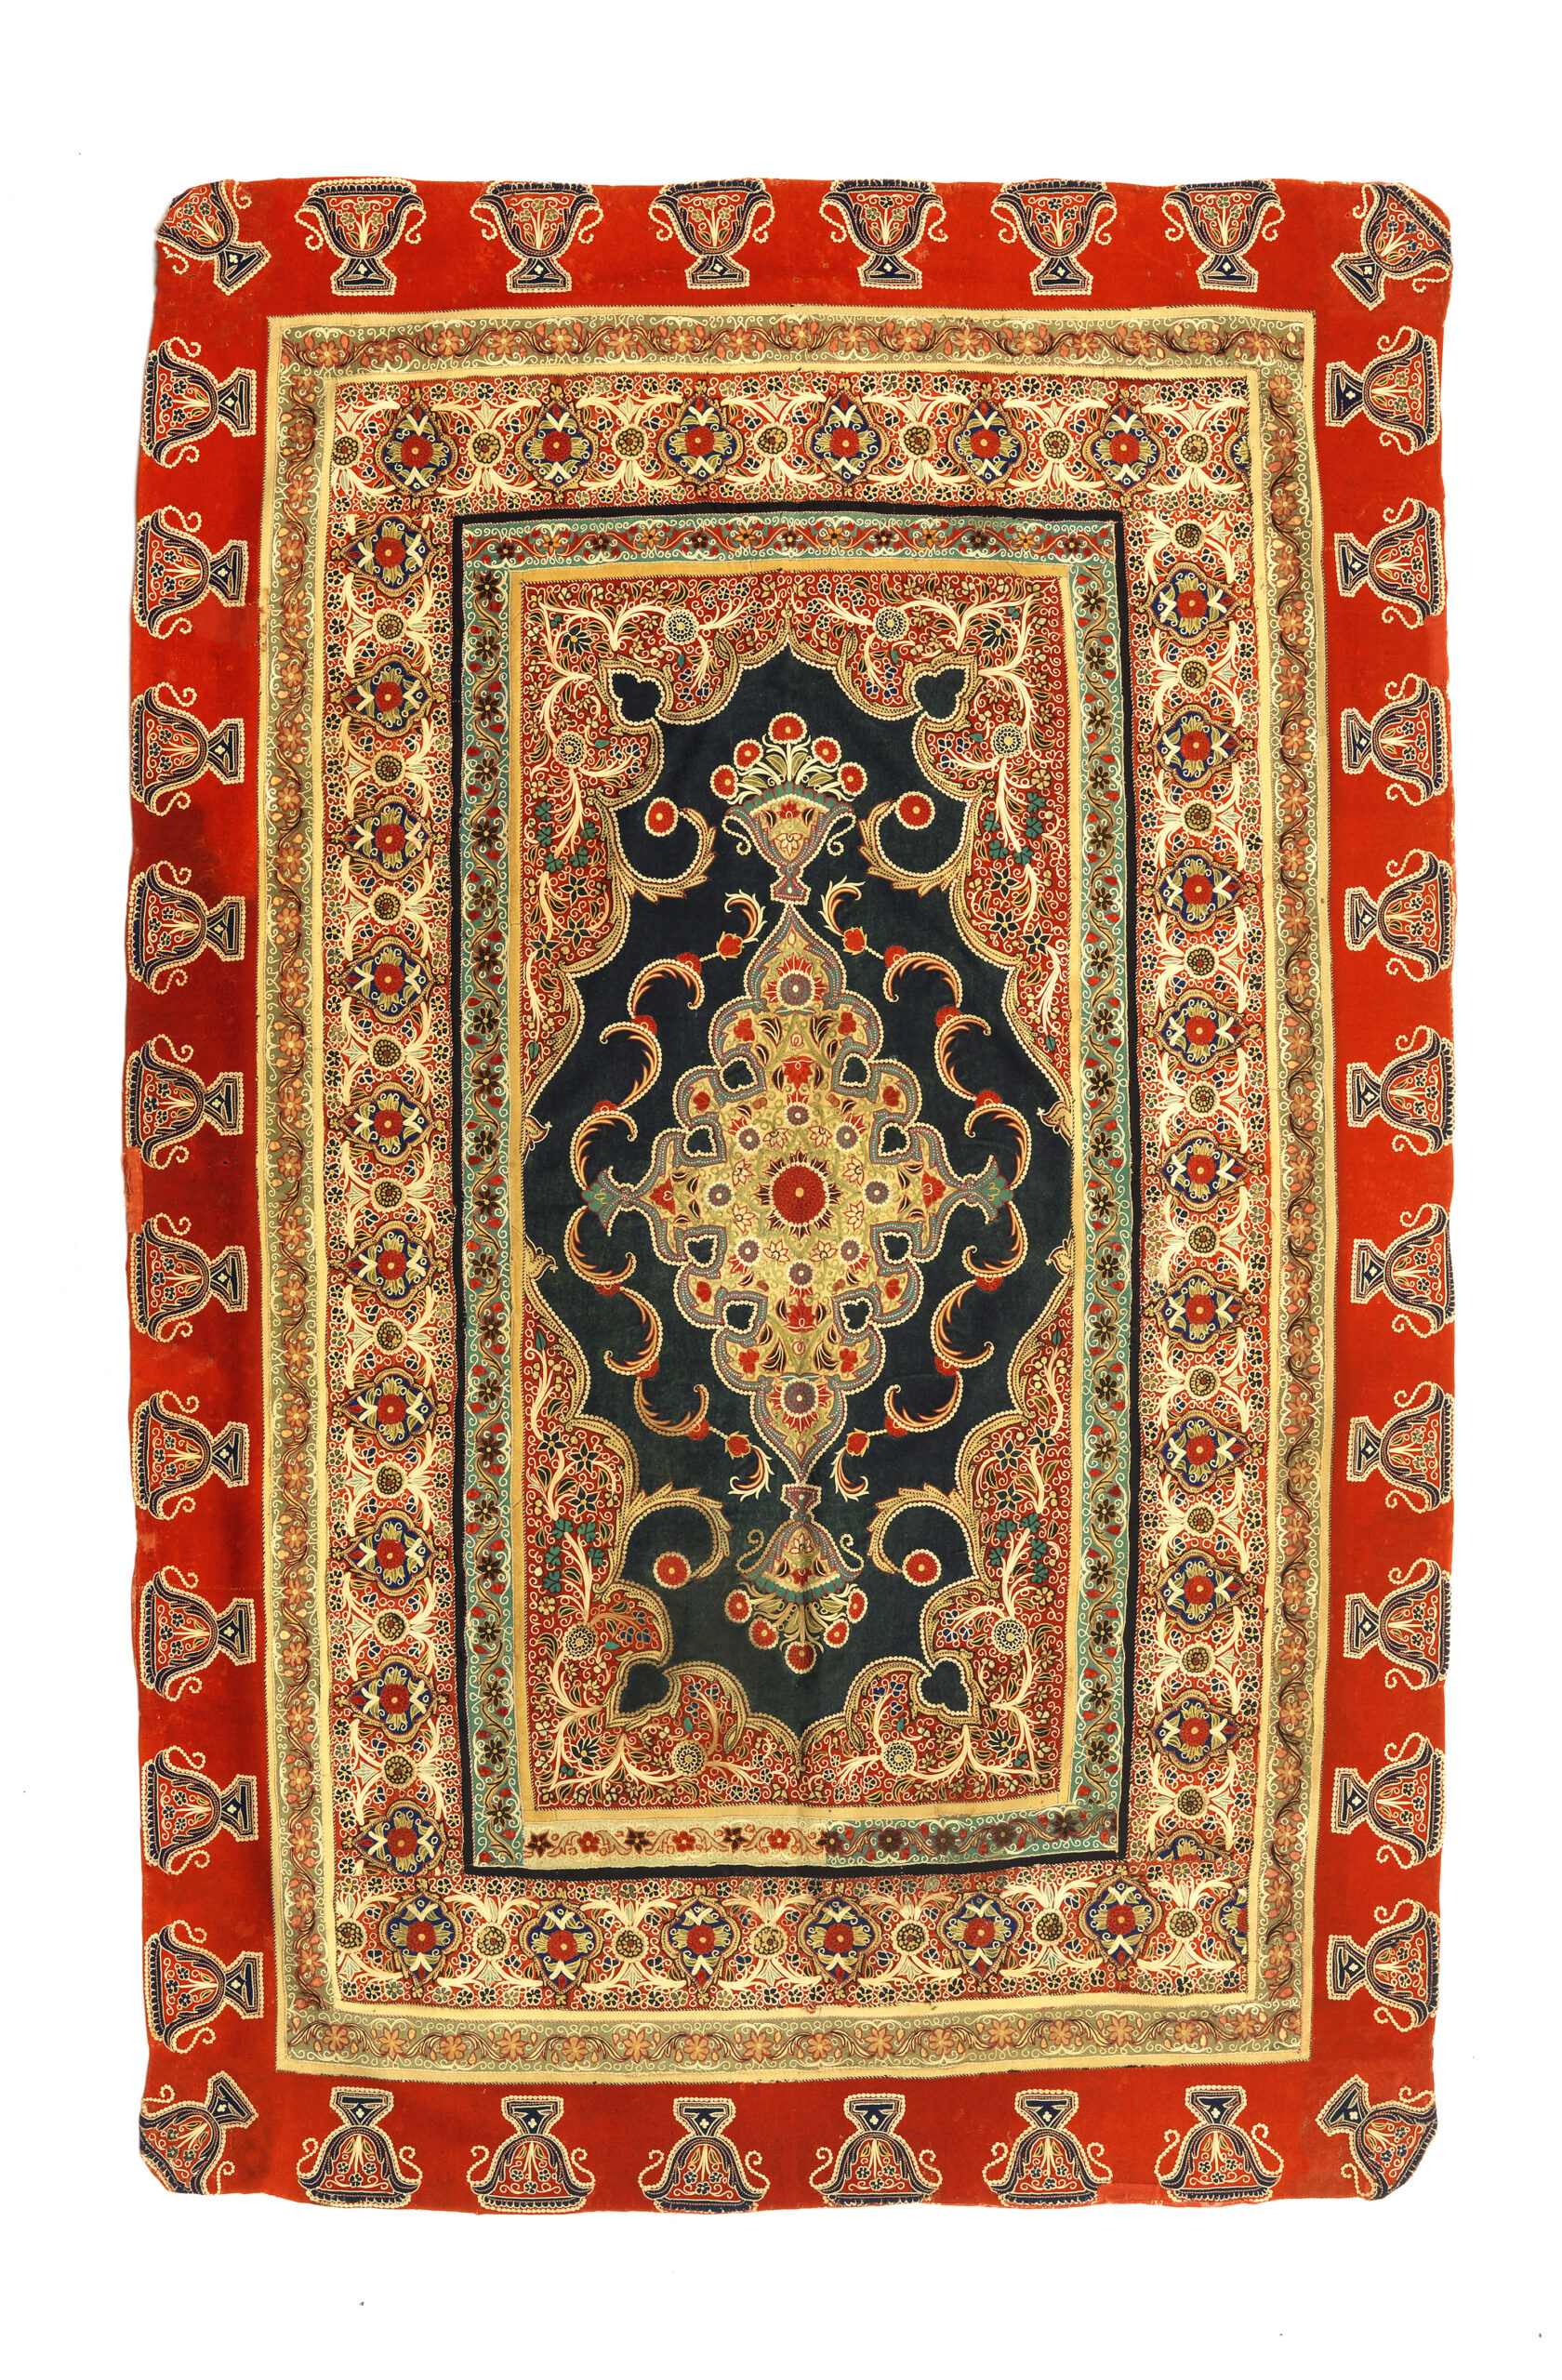 4 Cover, Rasht, late 19th century. Rasht-duzi patchwork, red, blue and yellow wool flannel embroidered in fine stitches with flower and foliage medallions and borders